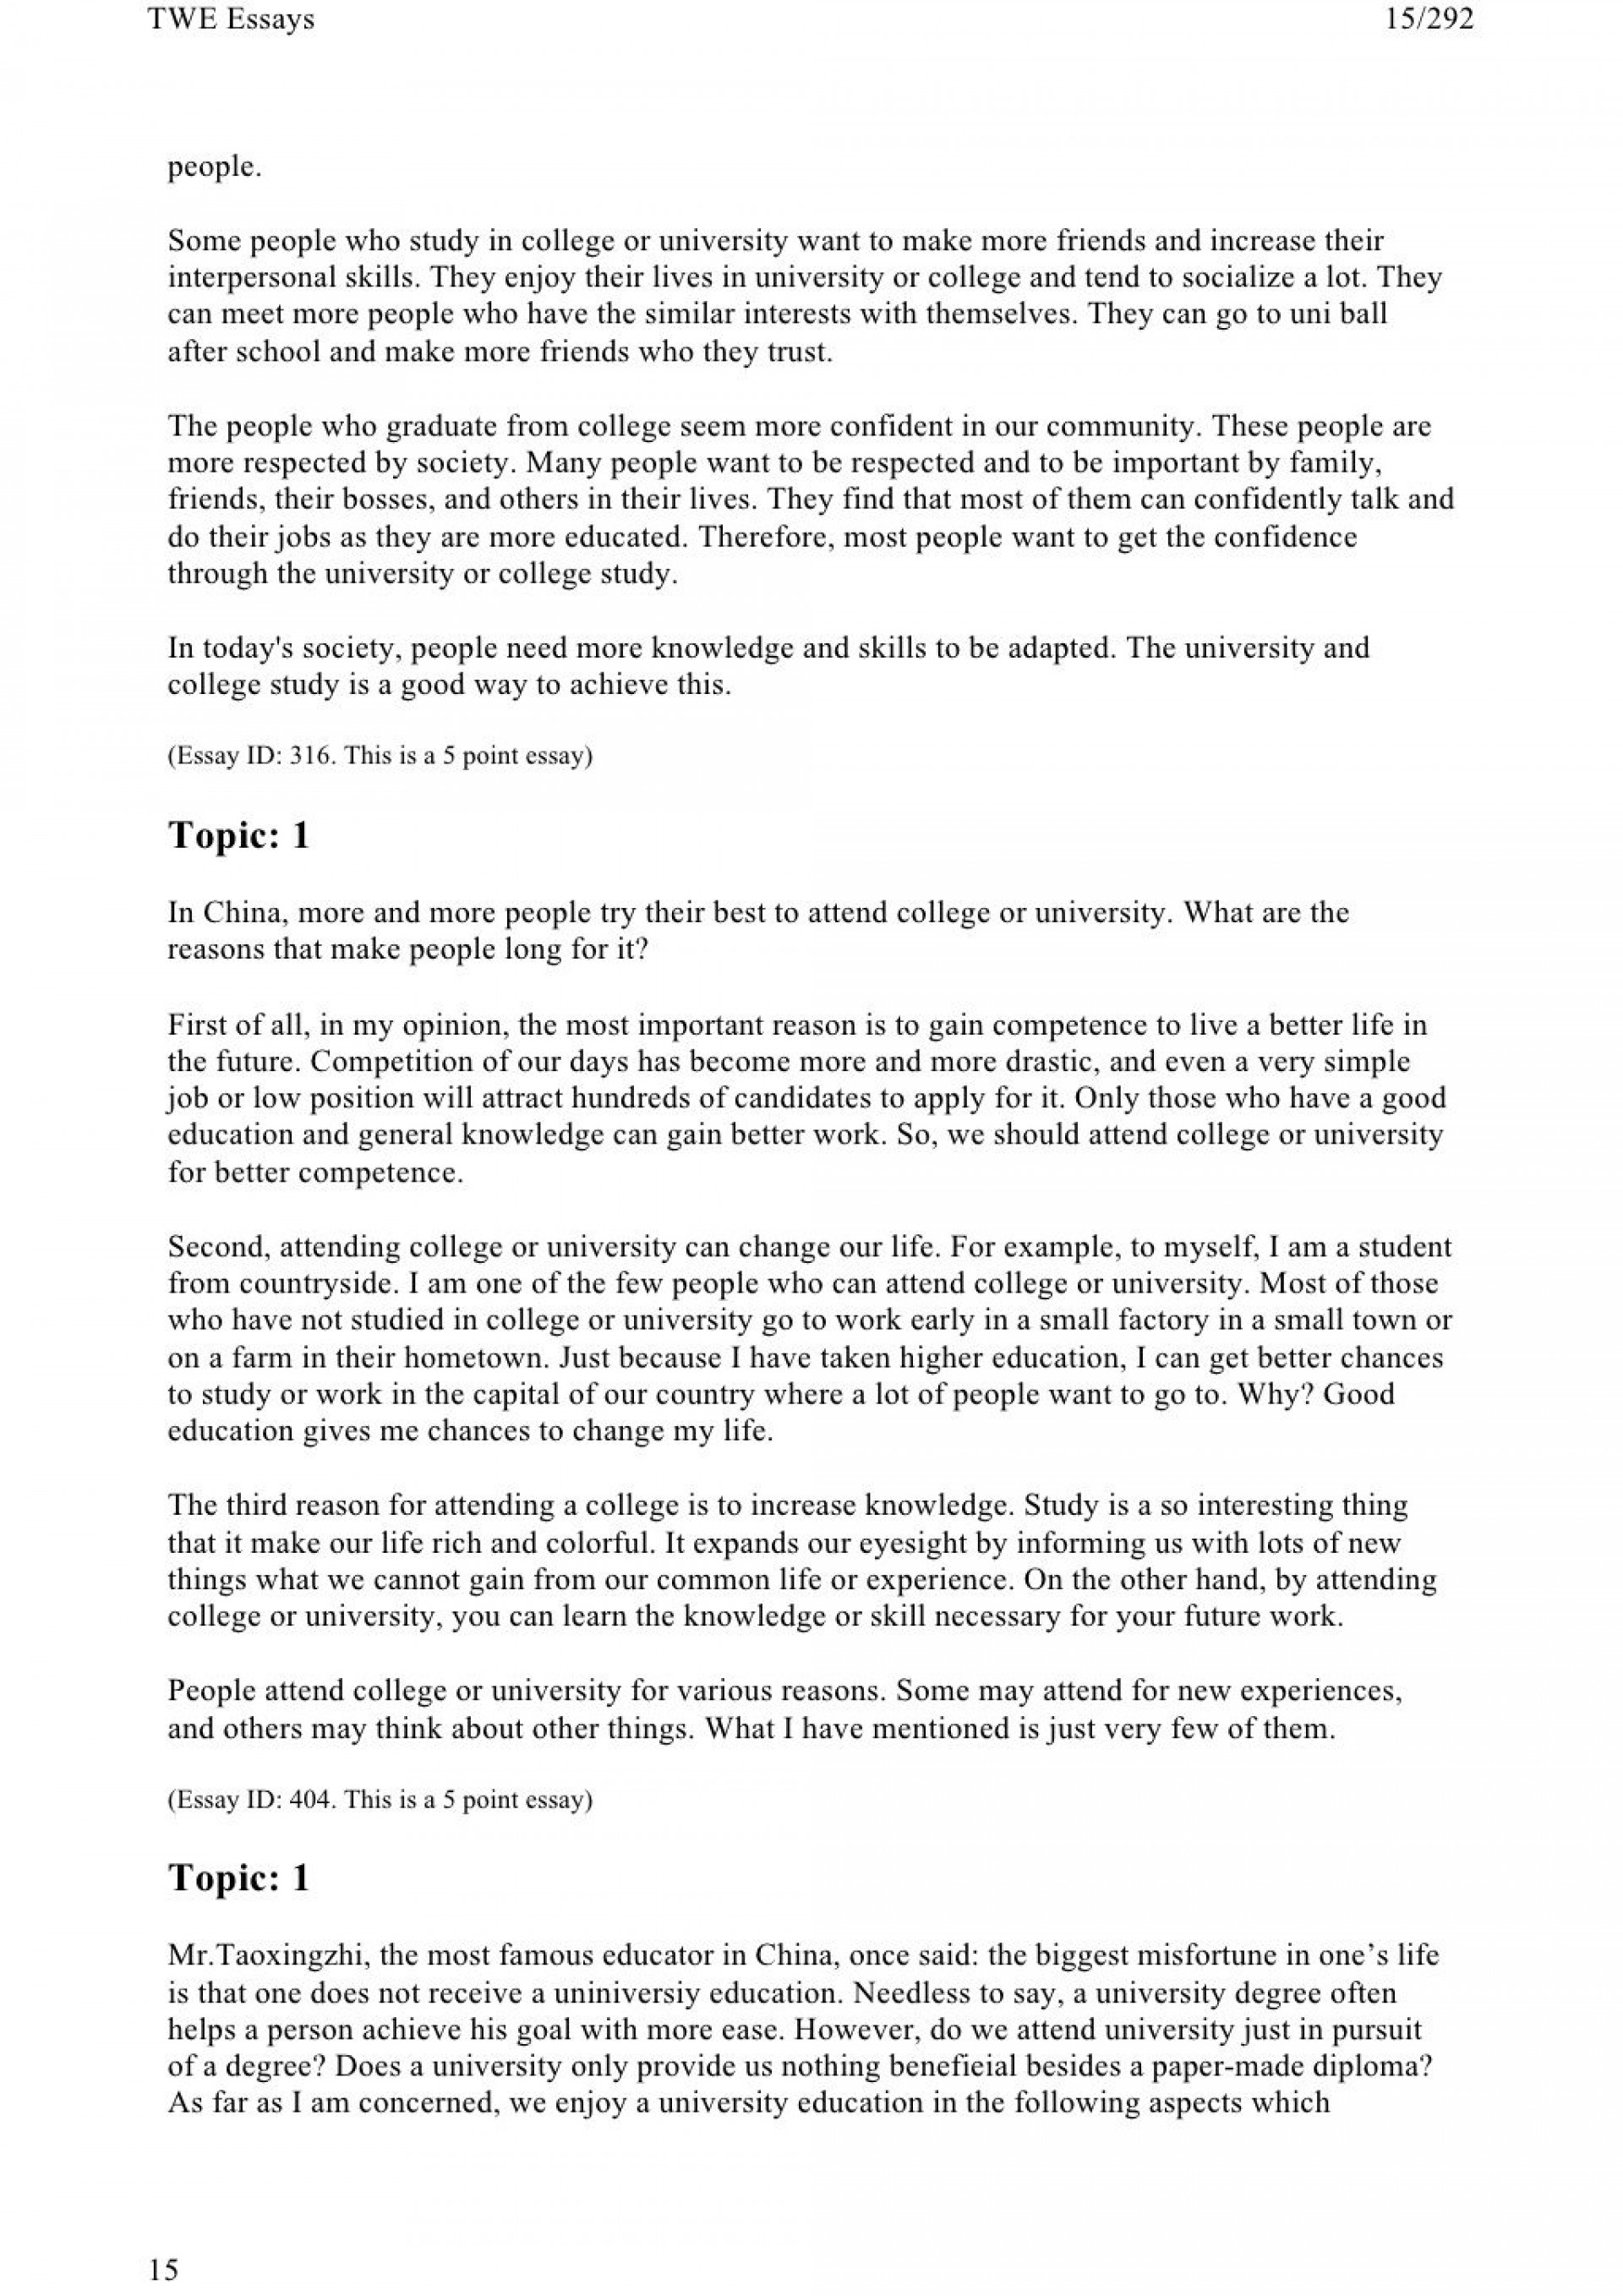 014 Toefl Writing Twe Topics And Model Essays Career Plan After College Graduation Essay My Plans Five Year Excellent High School Research Paper Prompts 1920